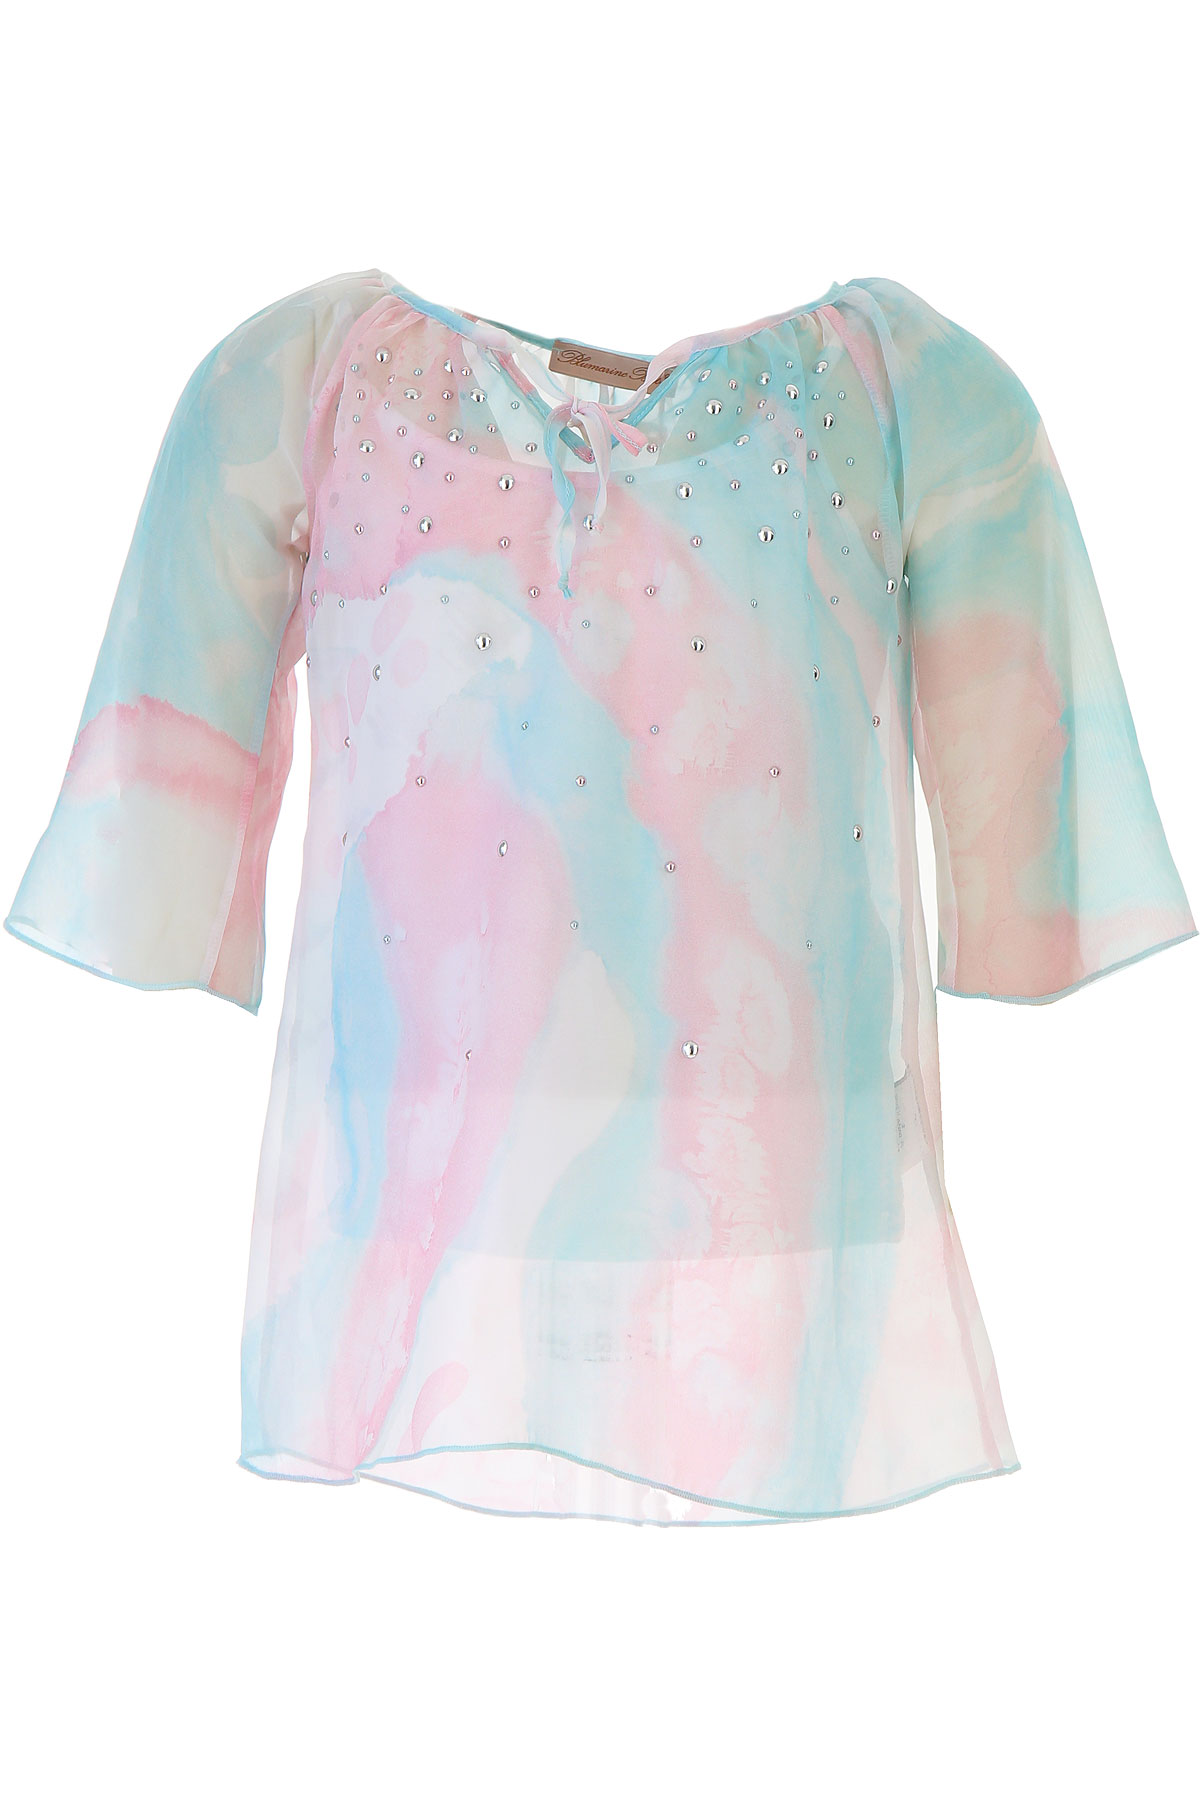 Image of Blumarine Kids Shirts for Girls On Sale in Outlet, Sky Blue, viscosa, 2017, 4Y 5Y